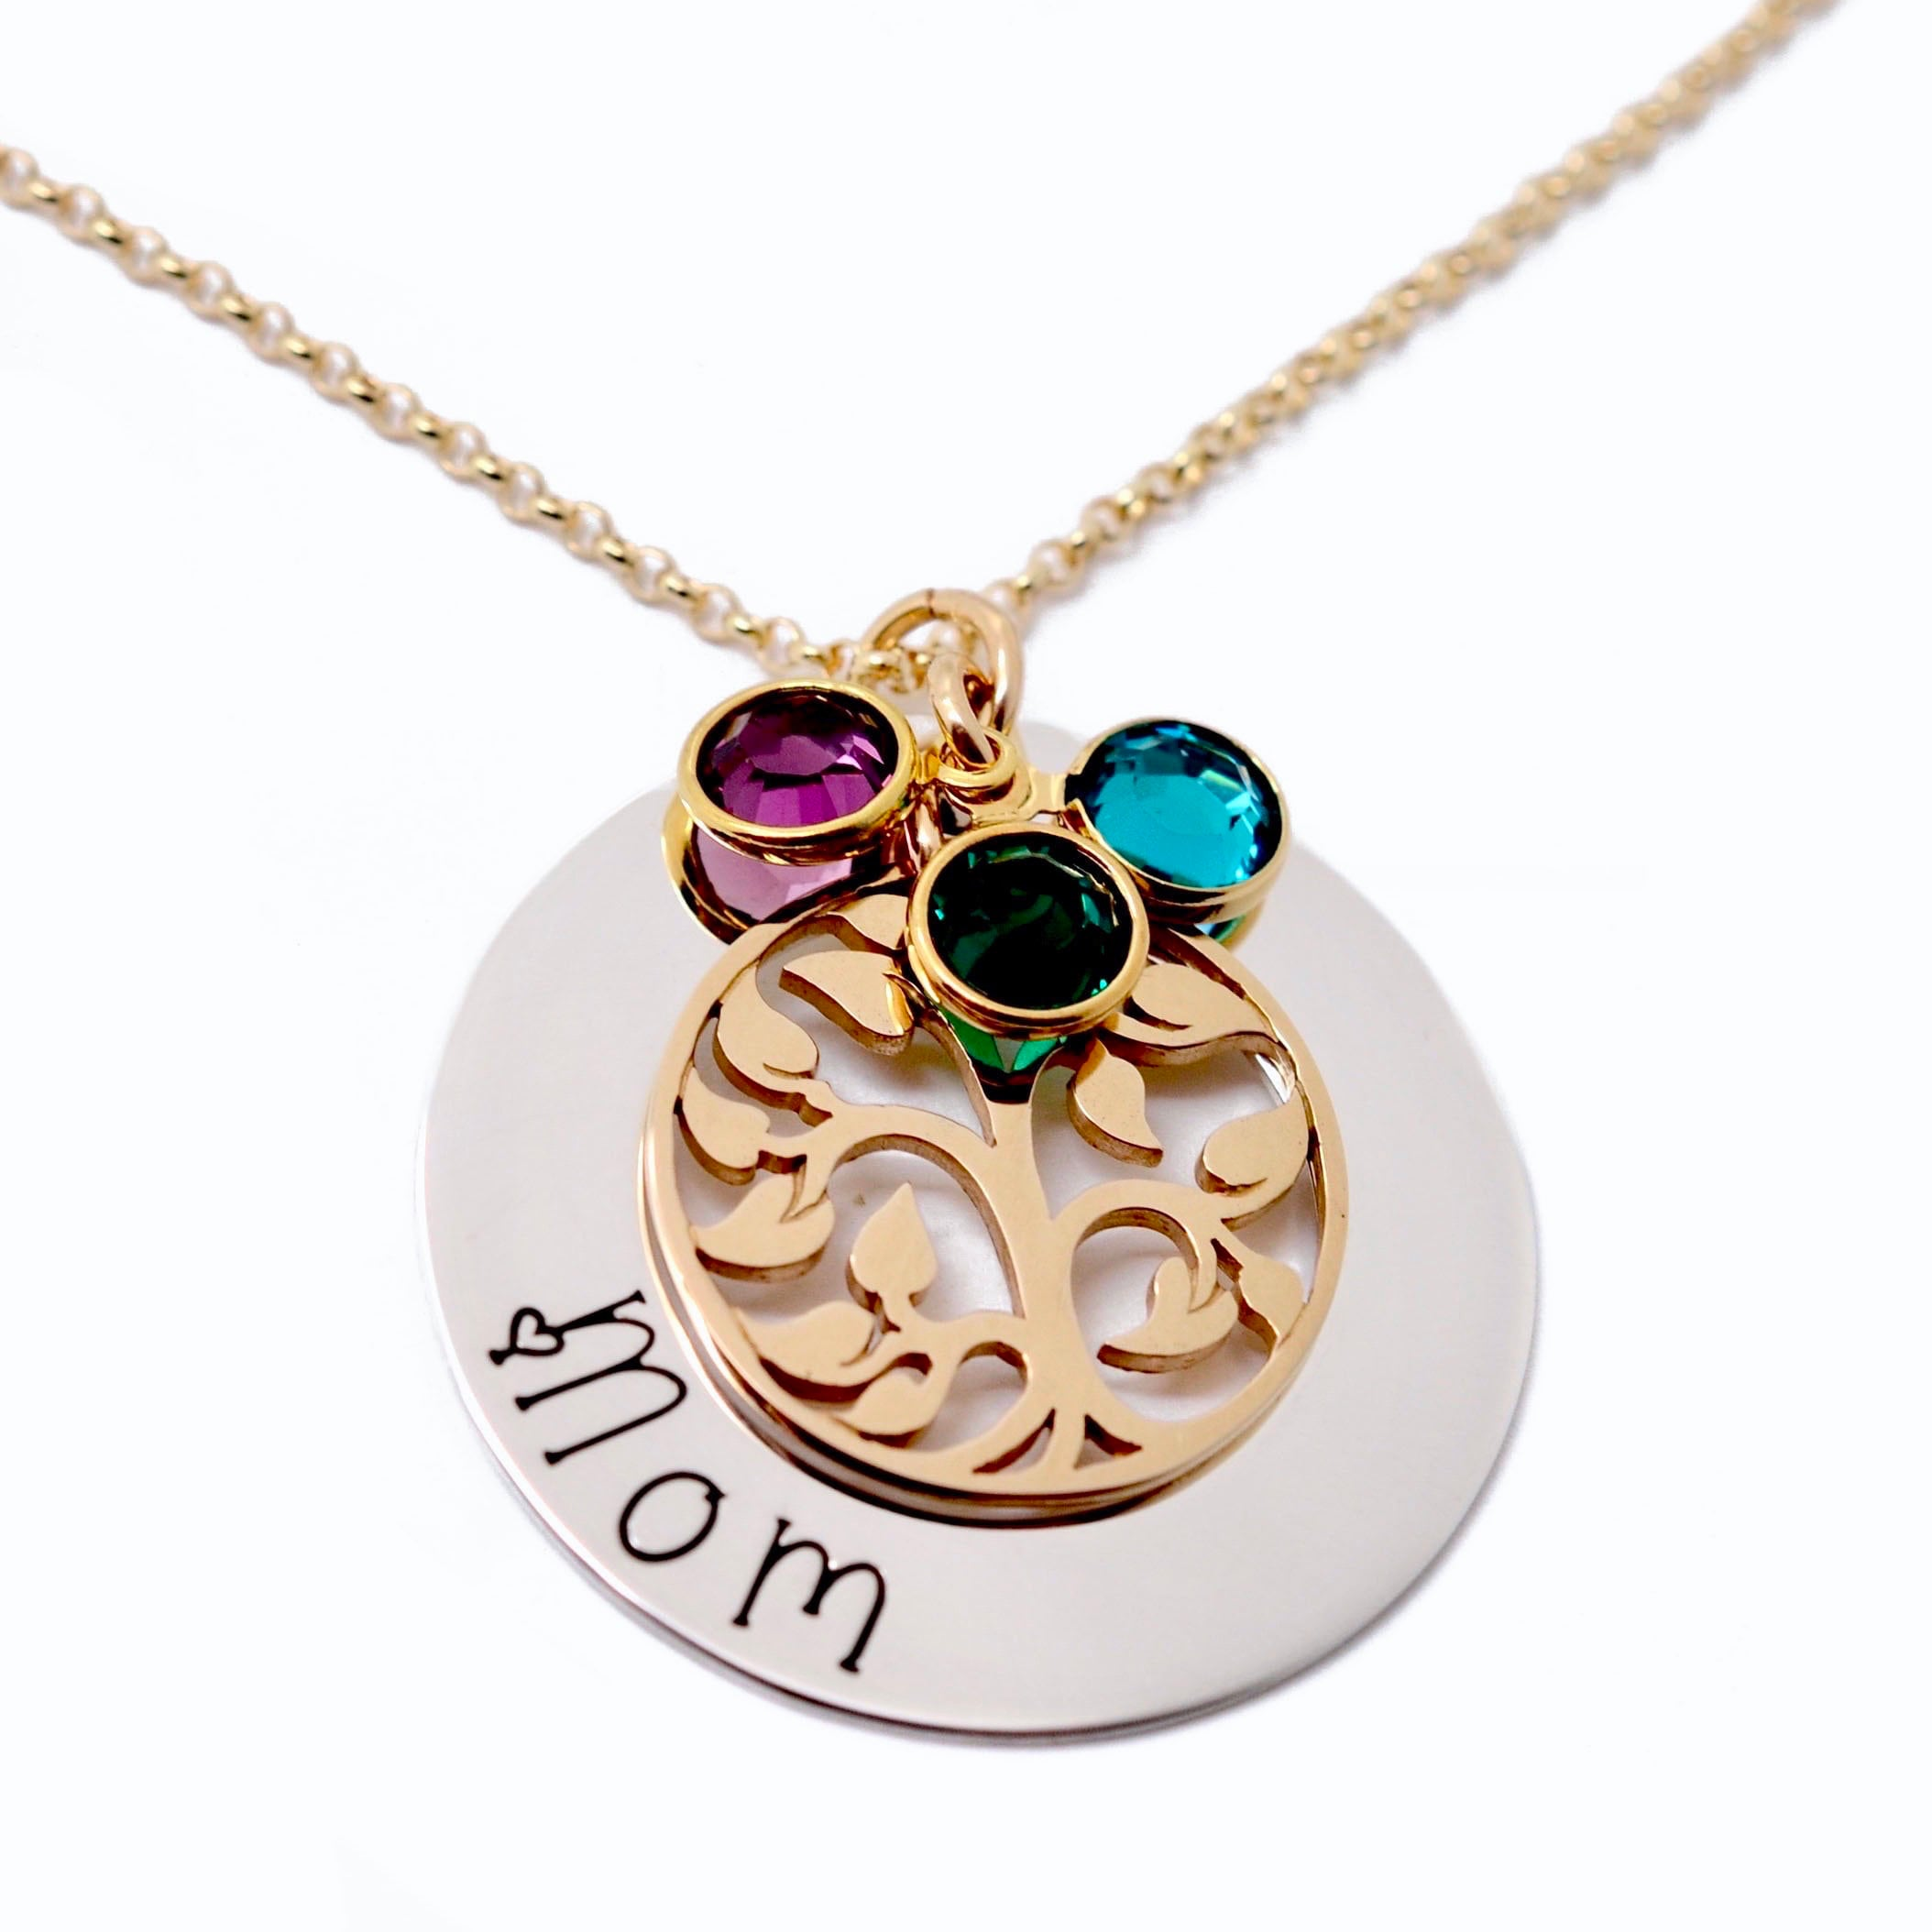 Personalized Mothers Necklace Birthstone Necklace for Mom Sterling Silver Family Tree Necklace Personalized Necklace Mothers Jewelry Gift